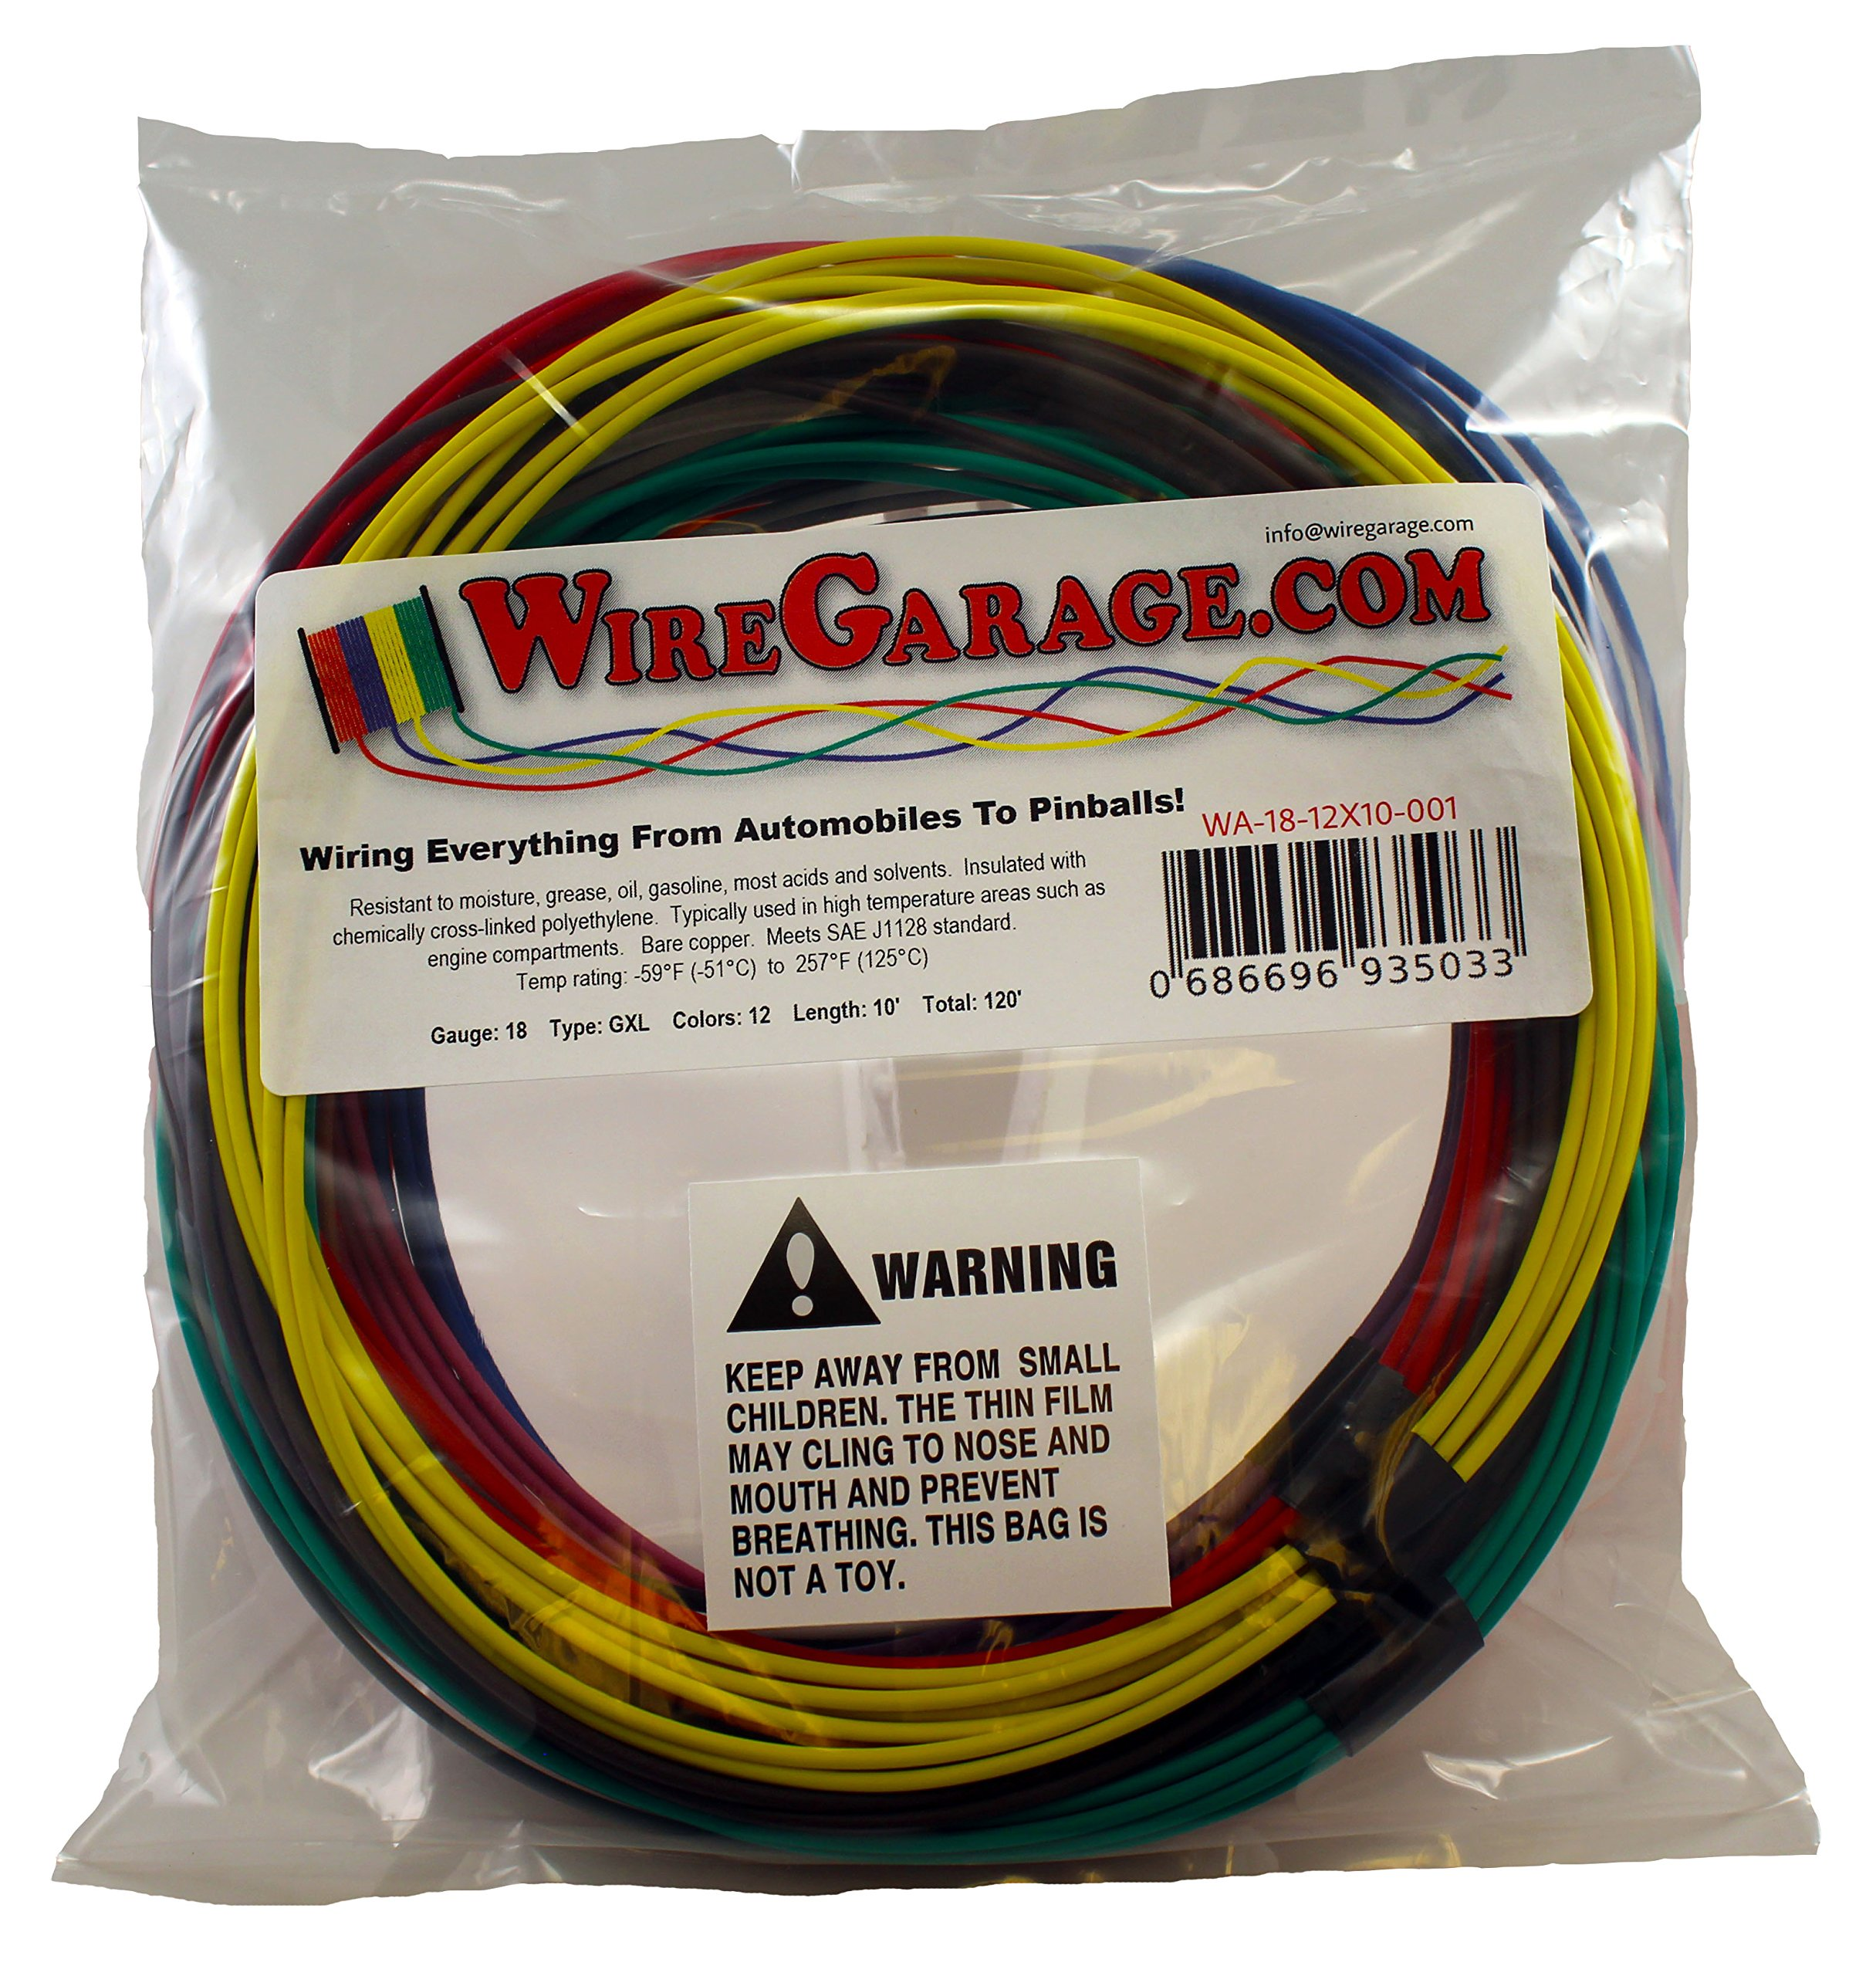 High Temp GXL Cross-Link XLPE Stranded Wire, 18 AWG Gauge, SAE J1128, Automotive, Motorcycle, Electrical, 10' Each of 12 Solid Colors (120' Total)